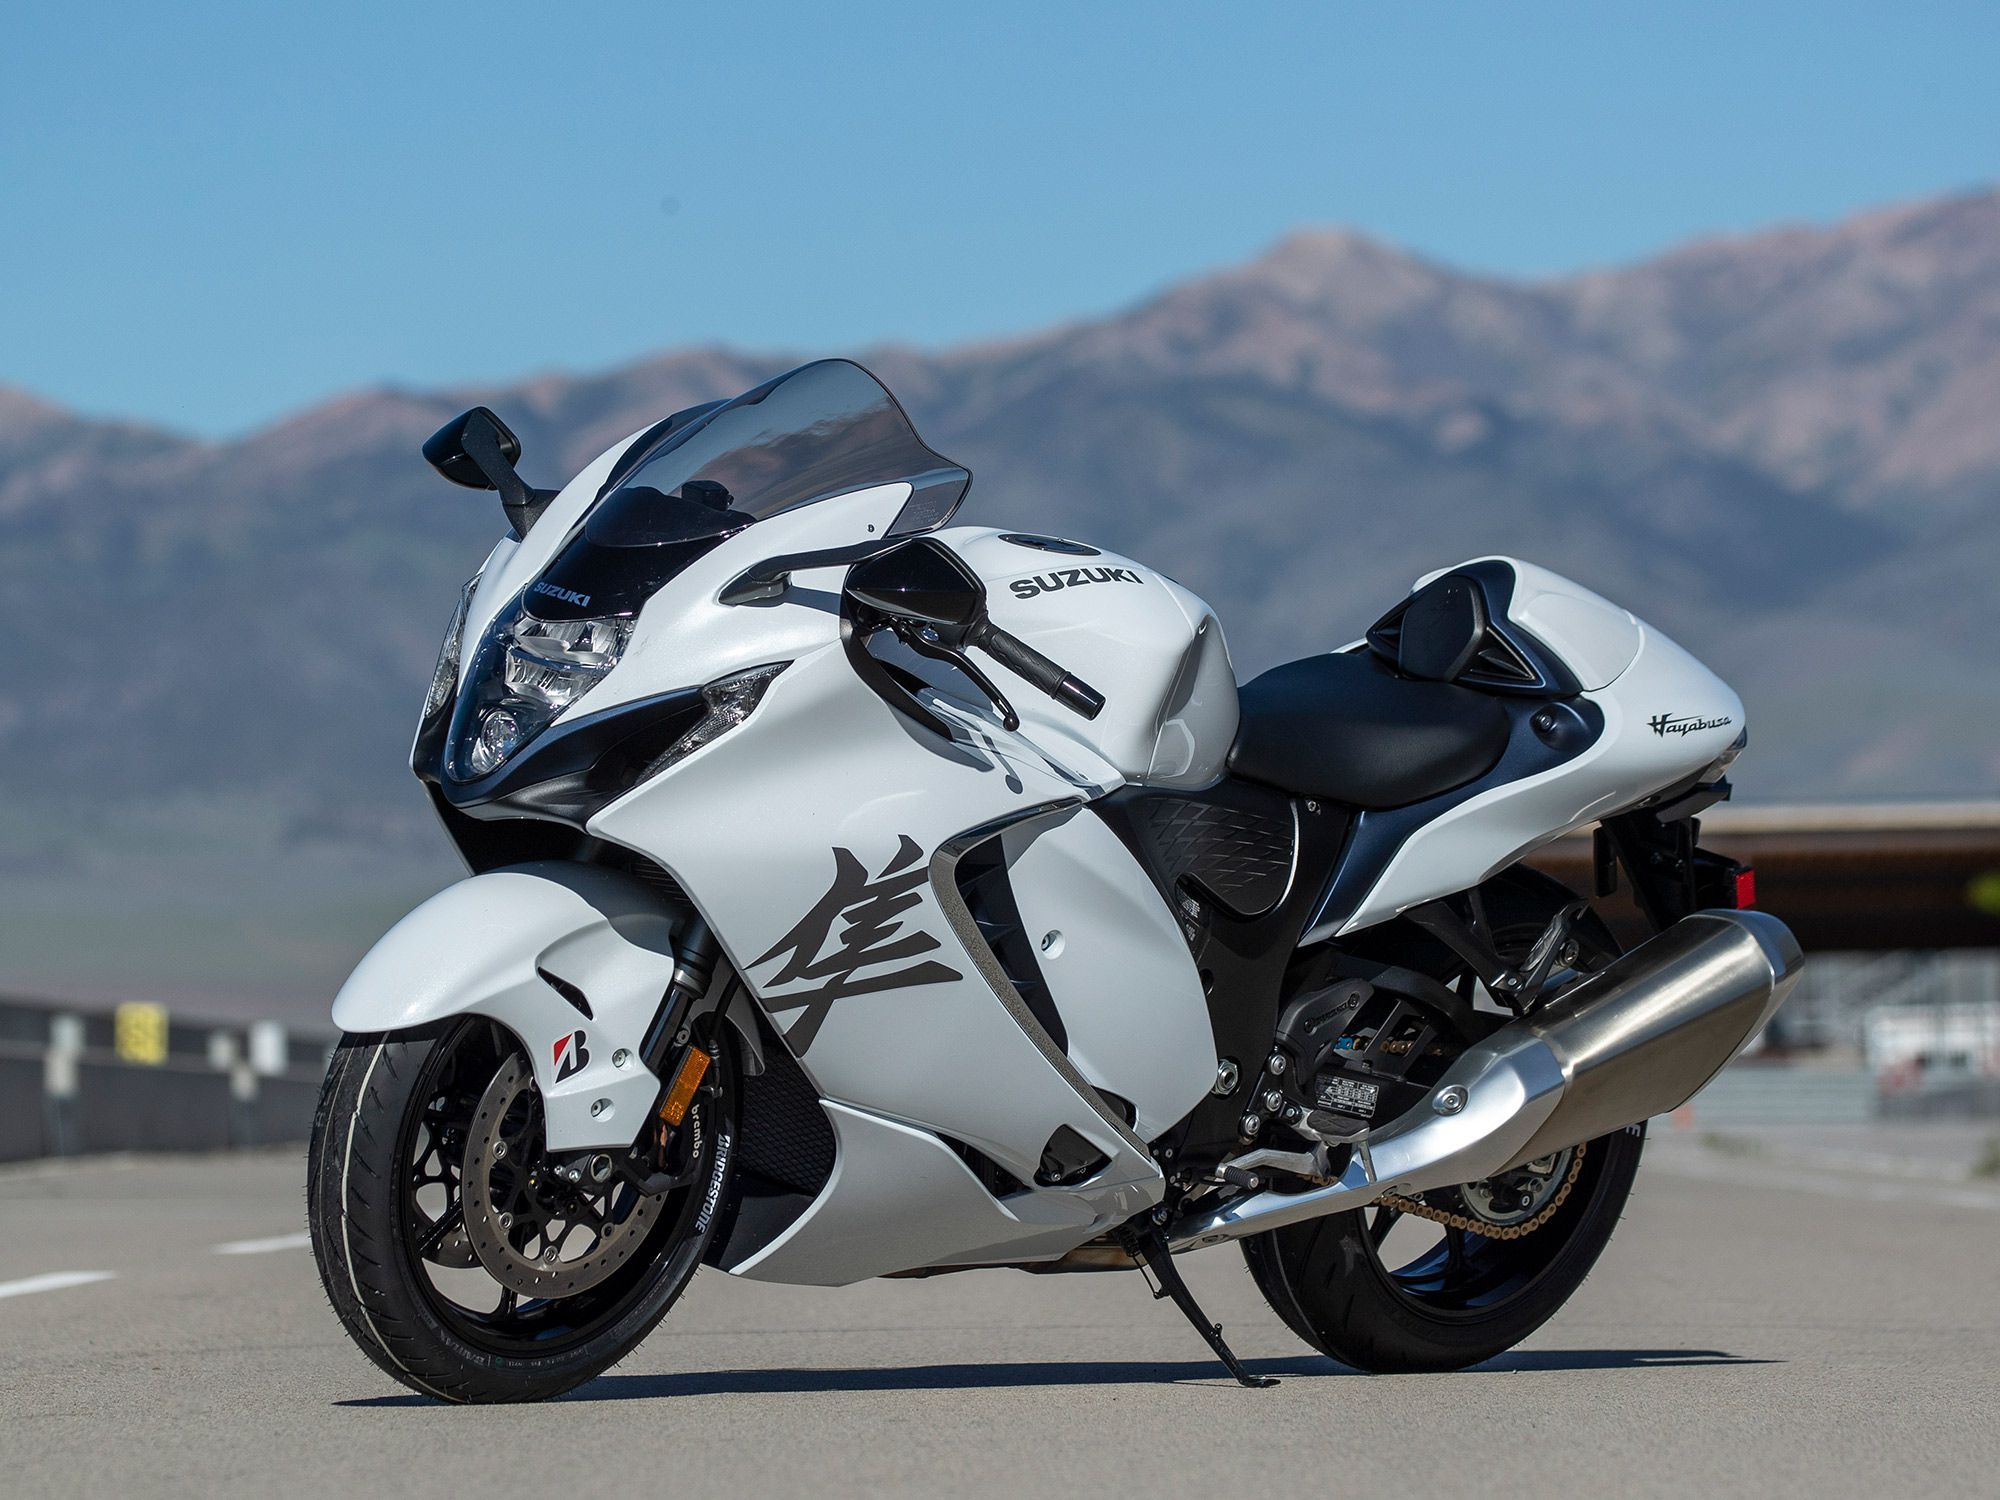 We are big fans of the sleeker and more modern appearance of Suzuki's '22 Hayabusa hypersport bike.